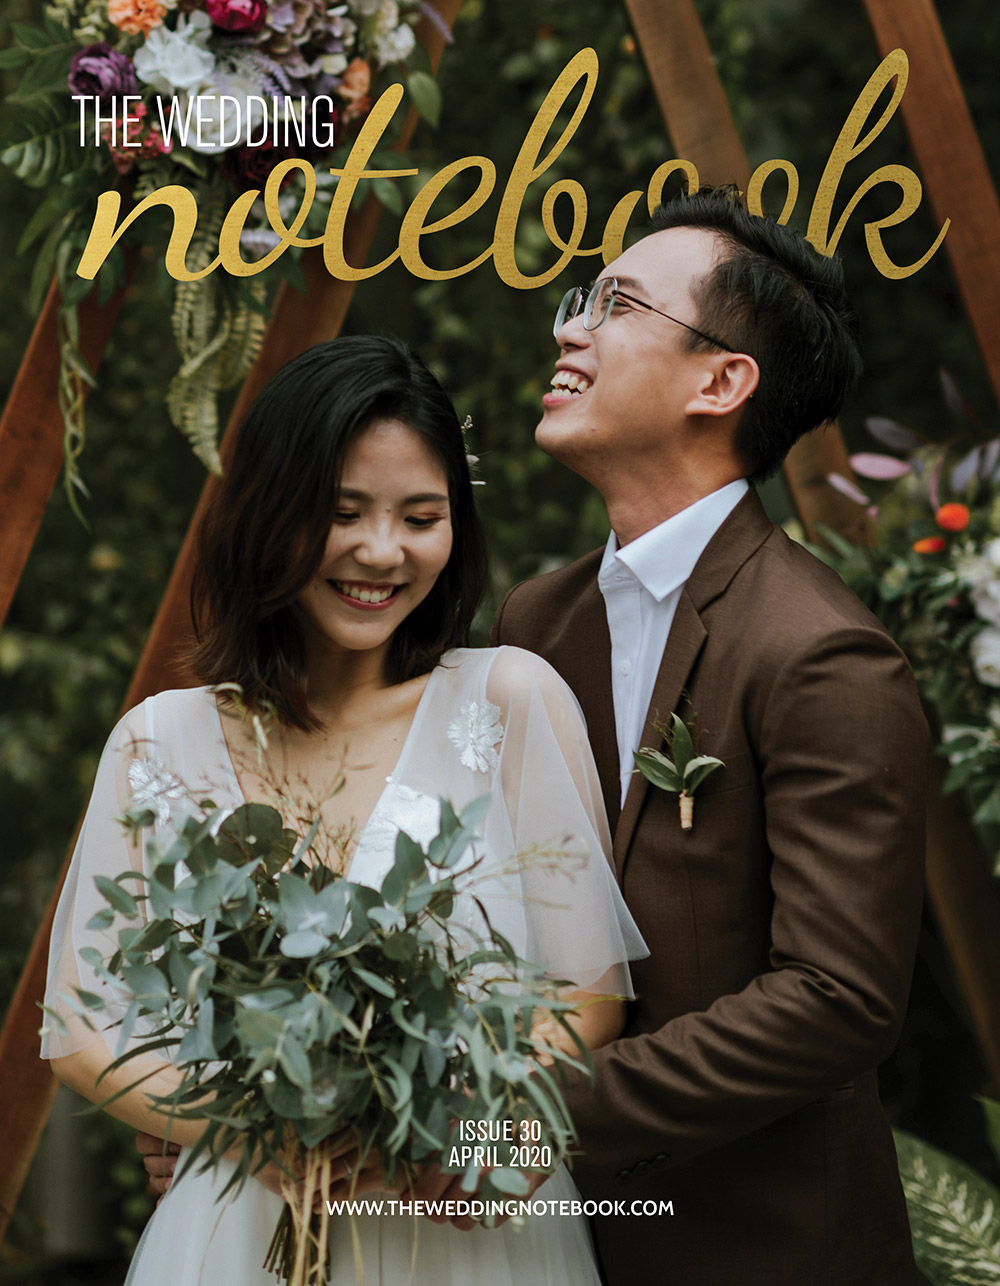 The Wedding Notebook online magazine